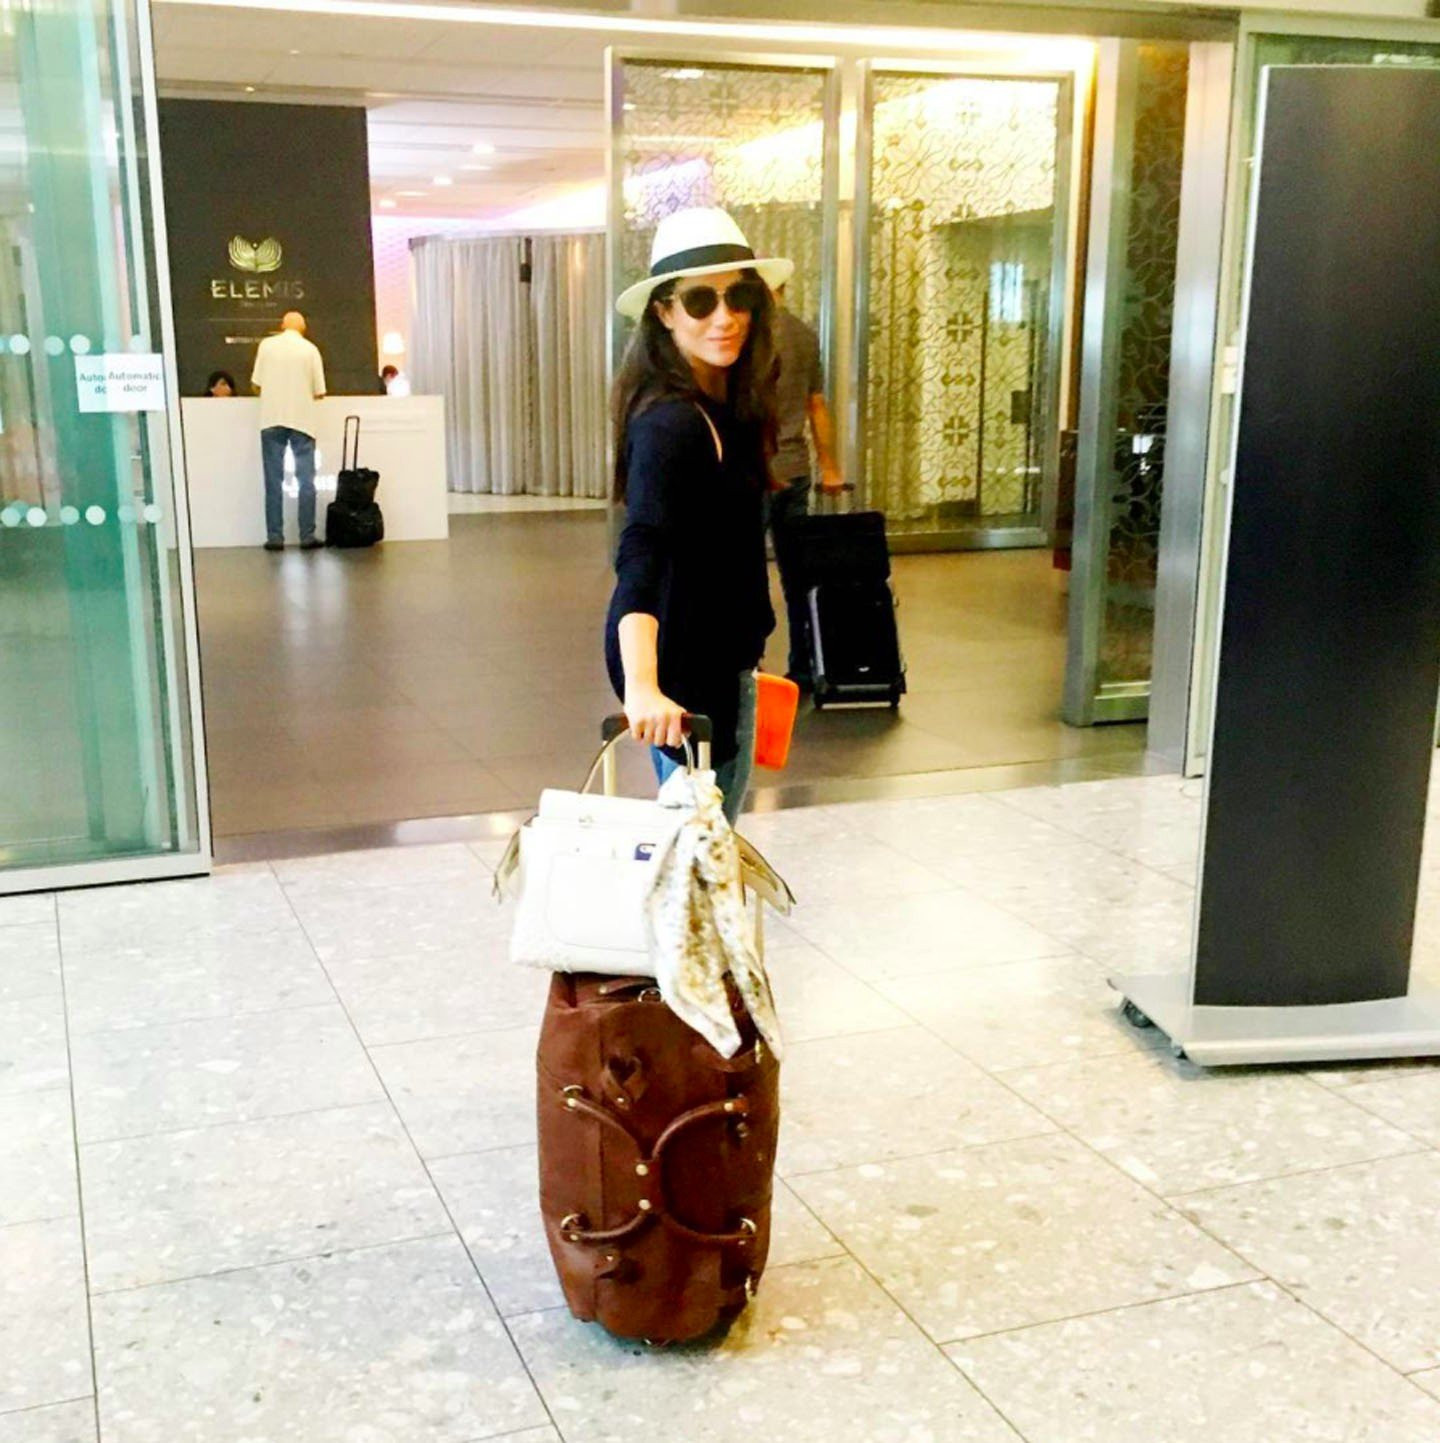 Meghan-Markle-Travel-Pictures.jpg